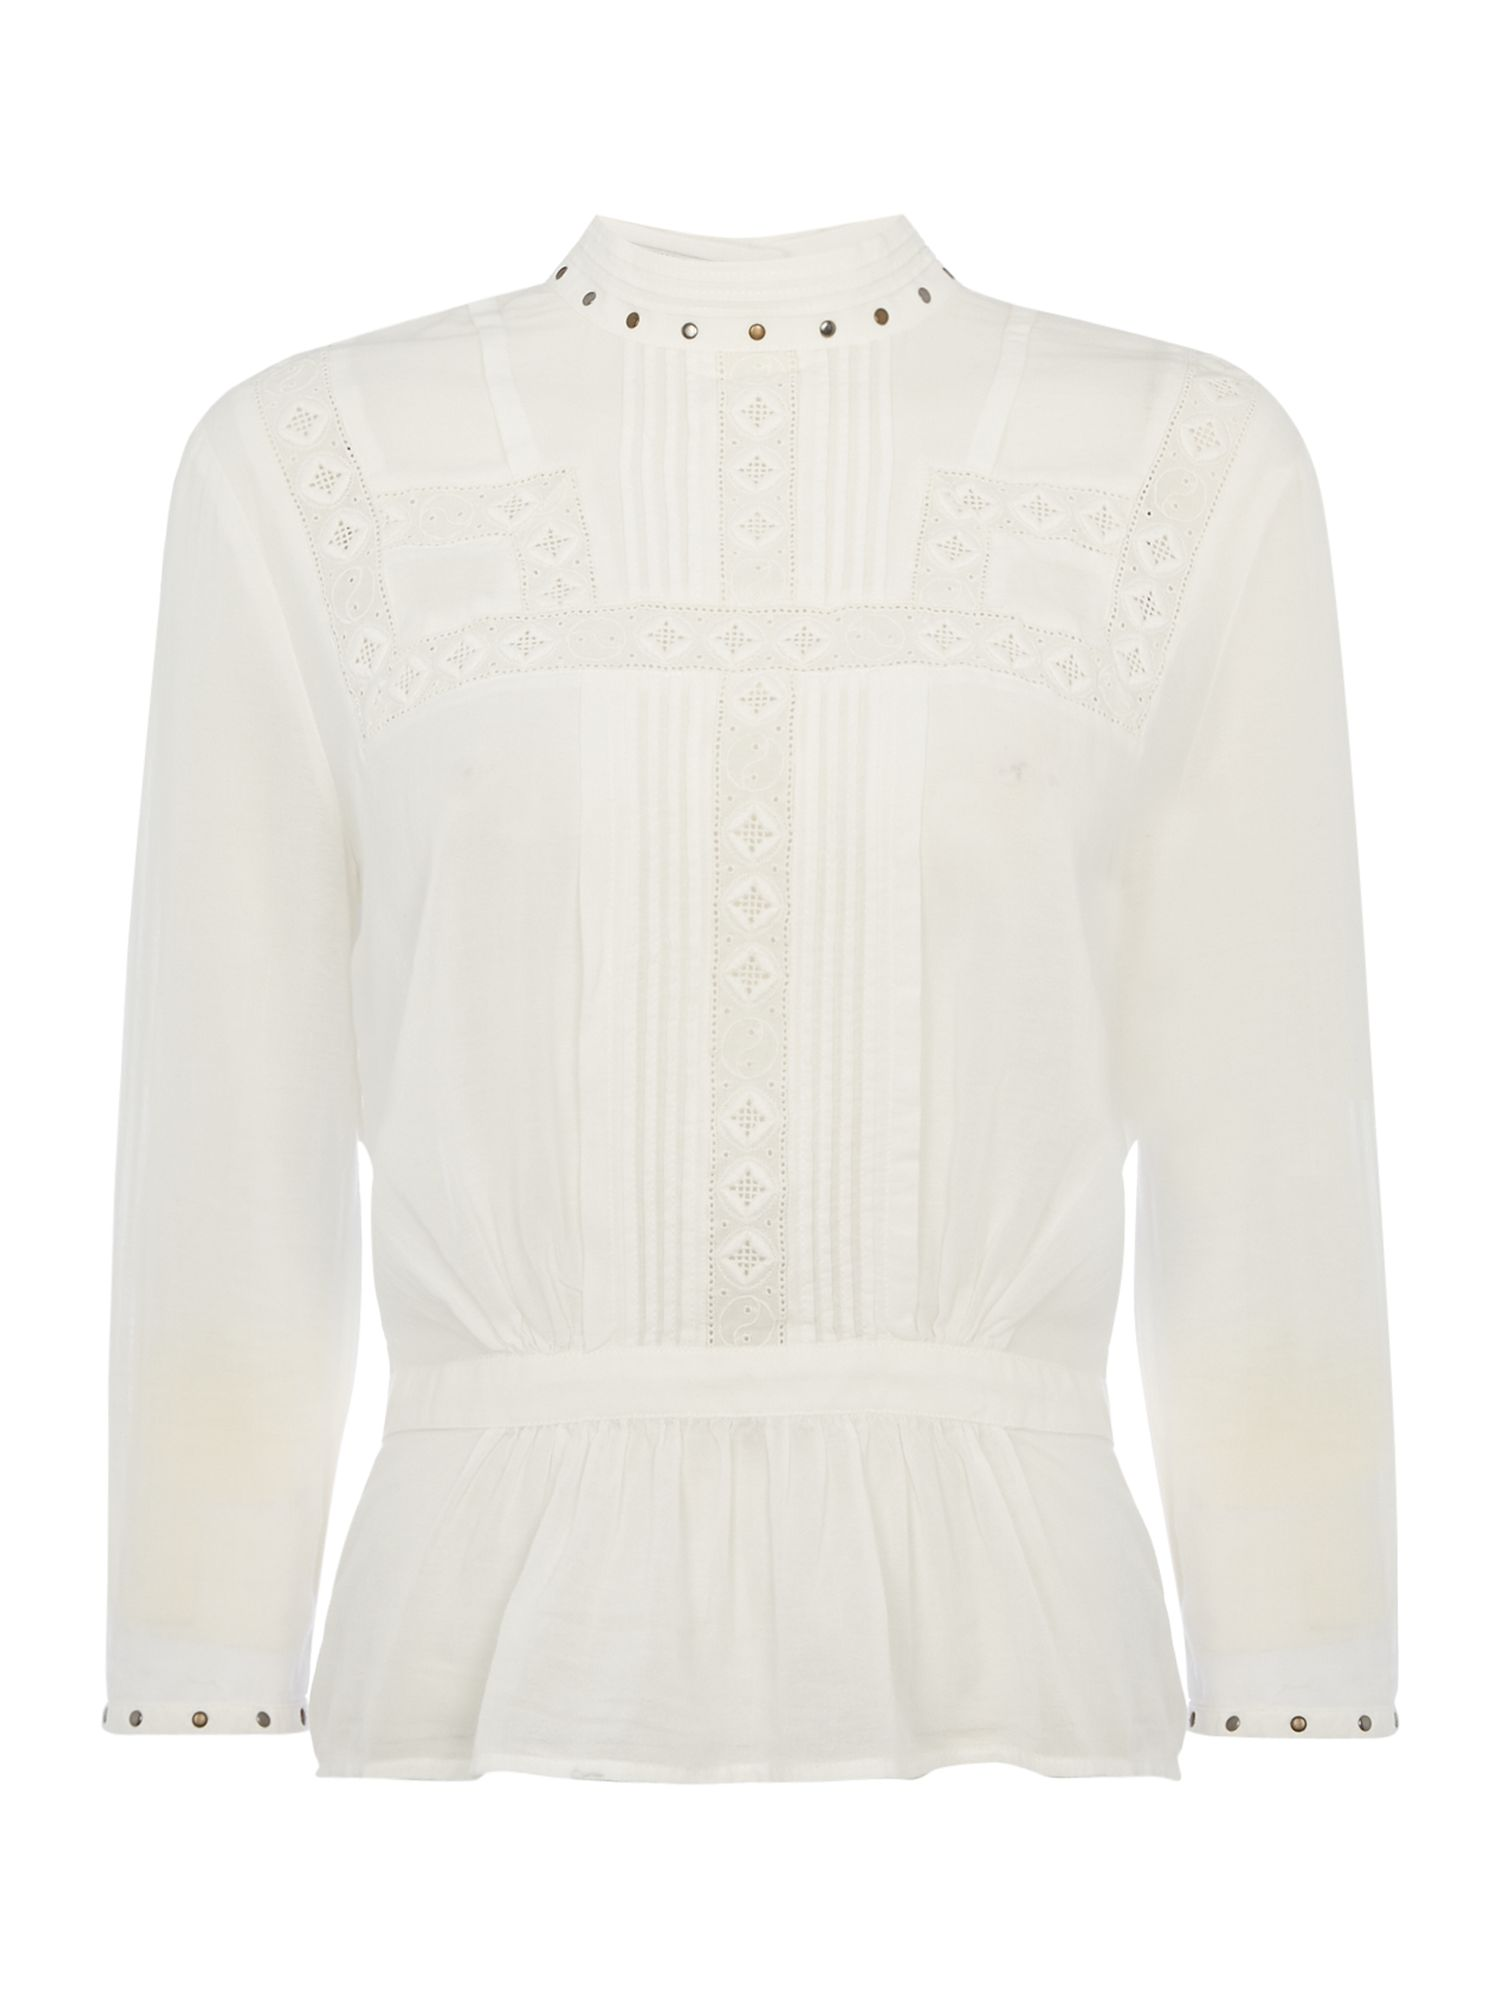 Maison Scotch Embroidered top with stud detail, White